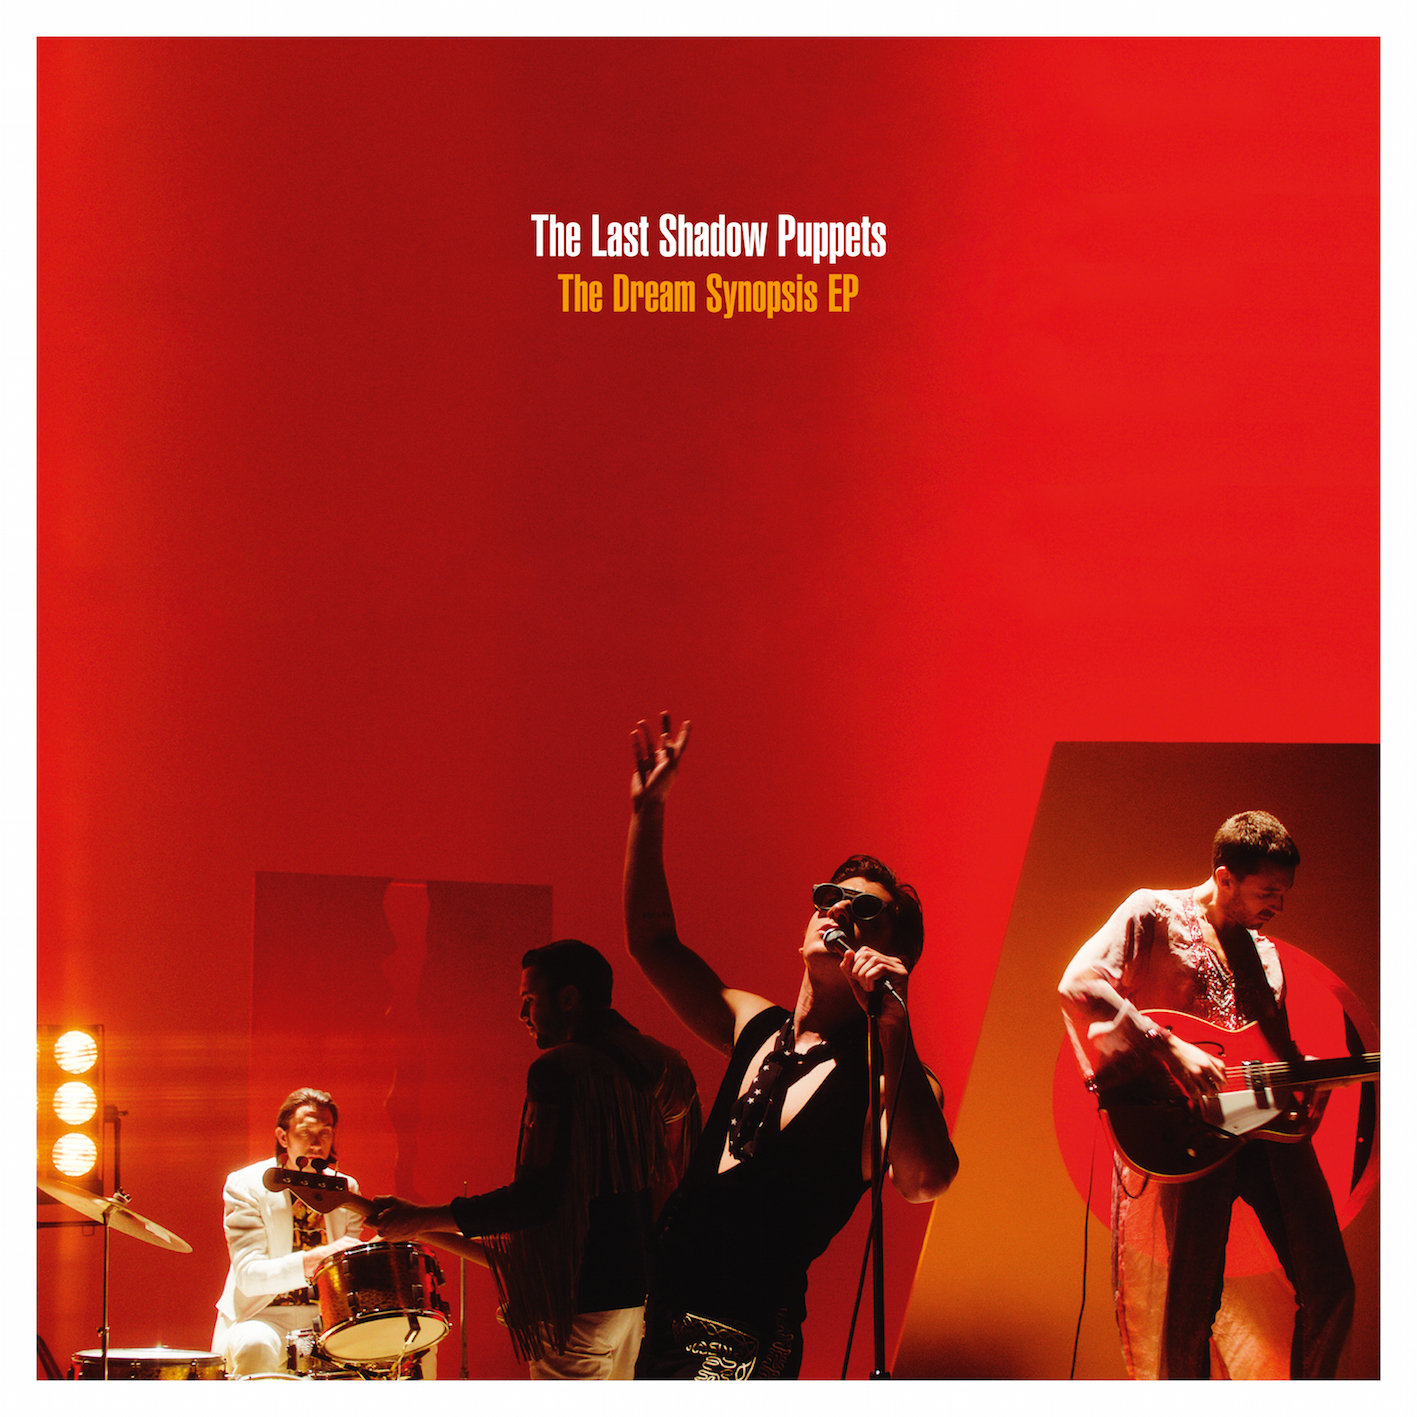 the_last_shadow_puppets_is_this_what_you_wanted_packshot